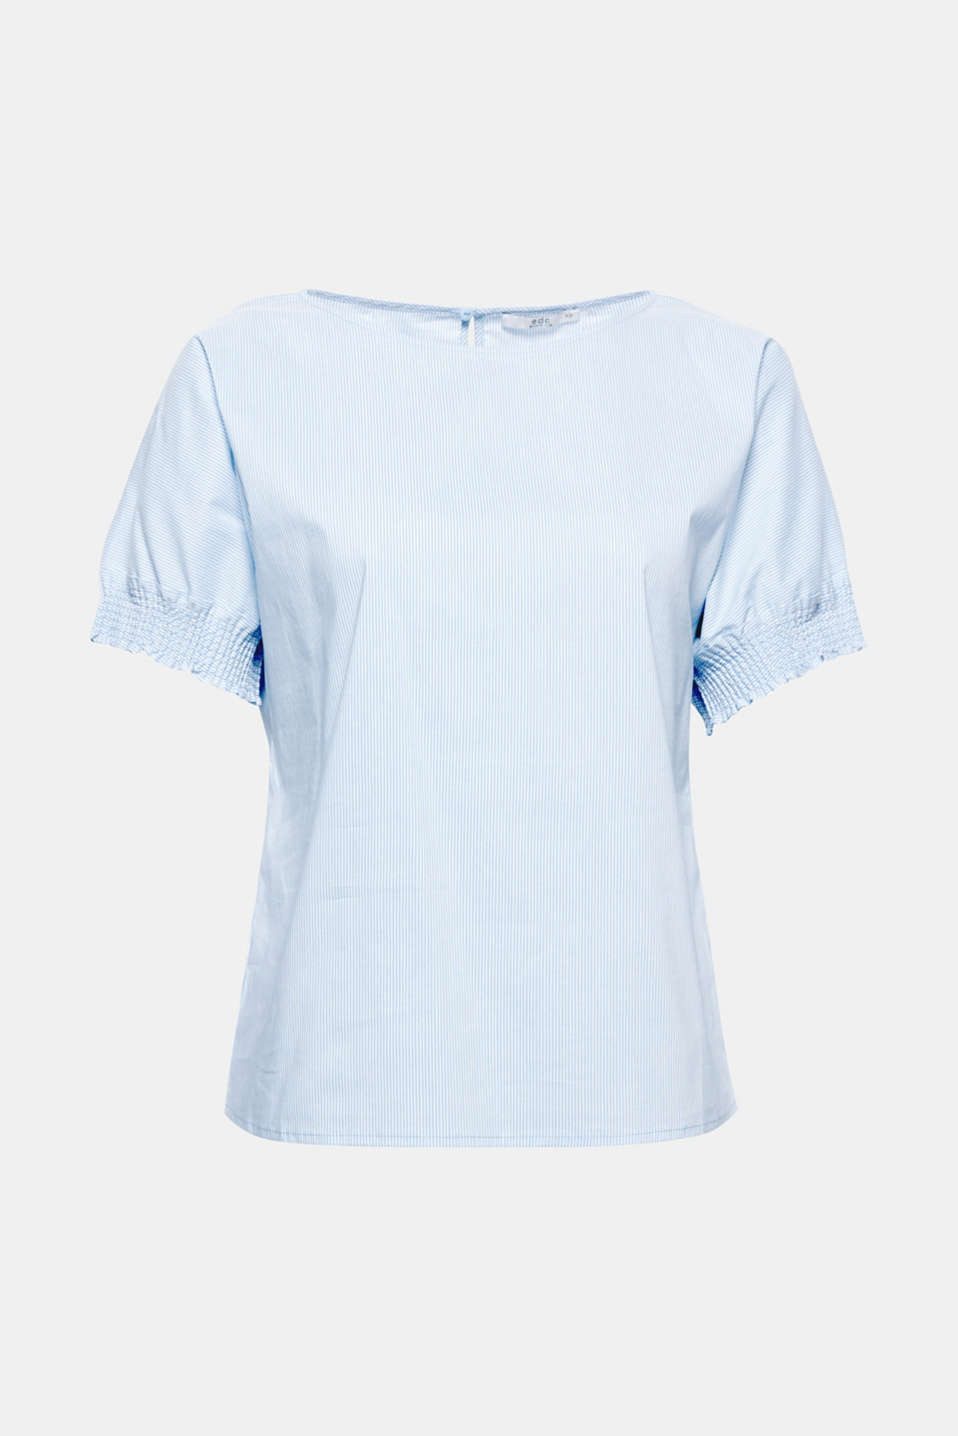 Lightweight, finely striped cotton poplin and an airy, figure-skimming silhouette make this blouse a perfect summer favourite.